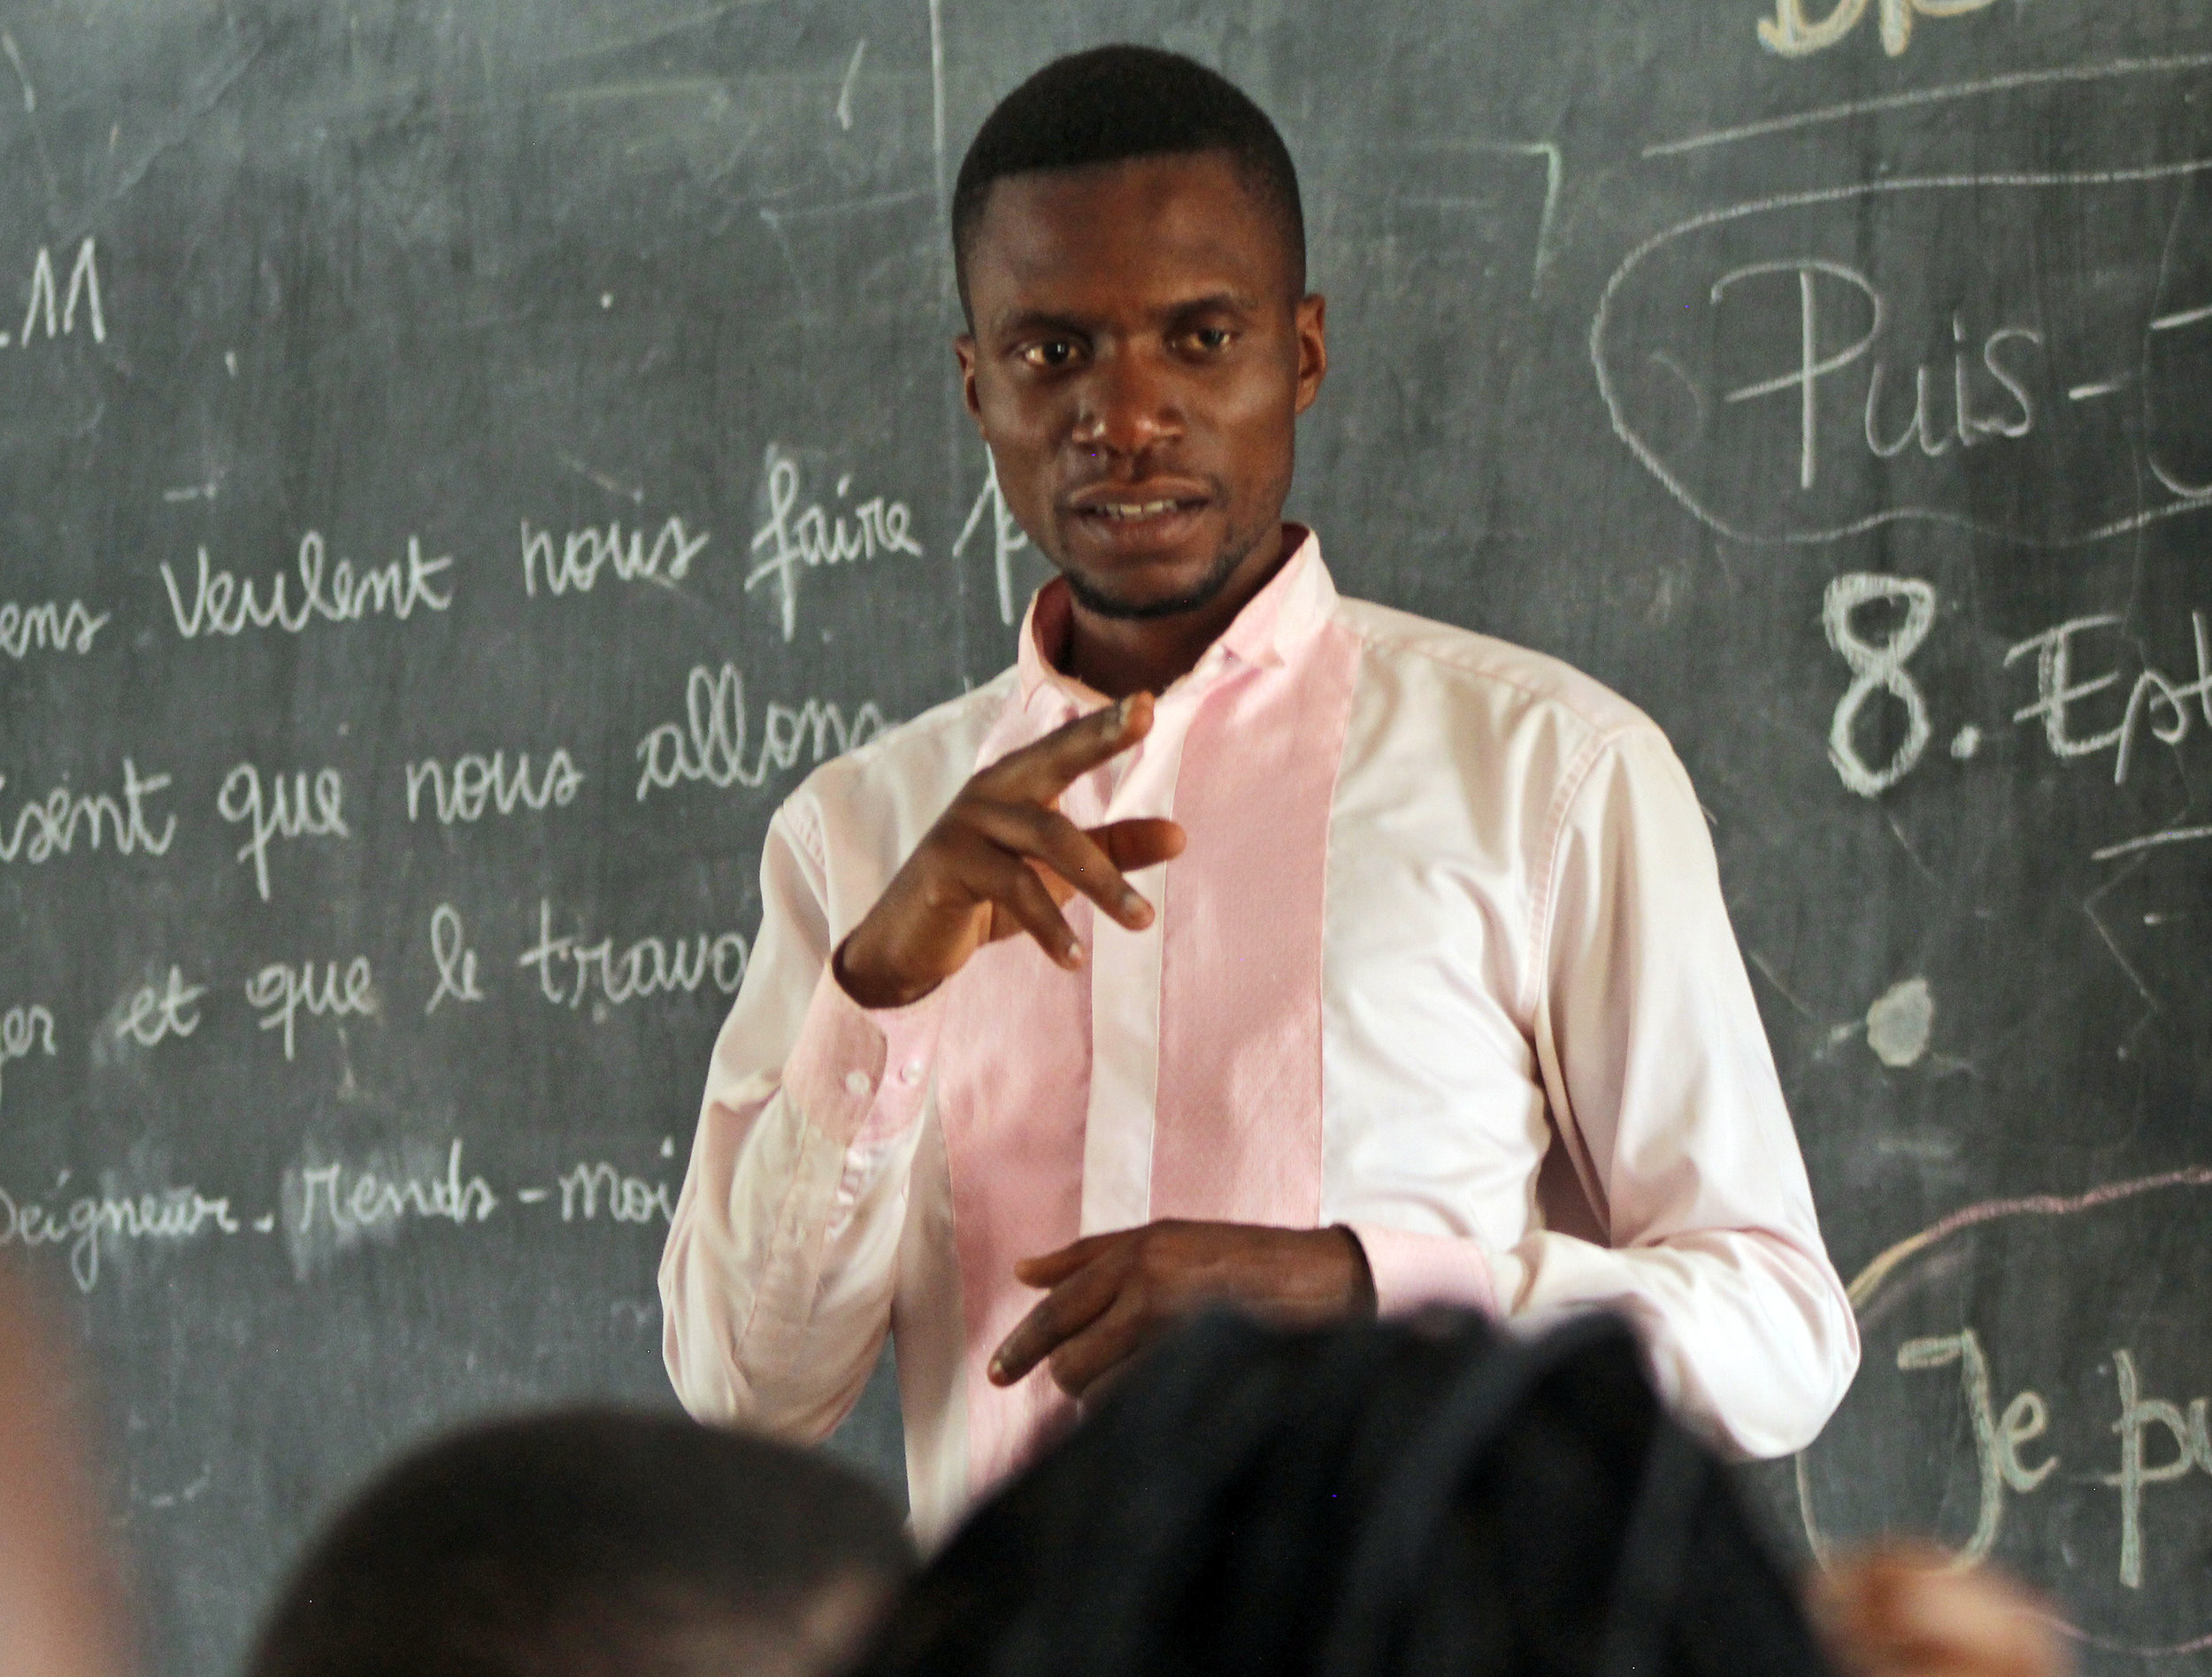 Future Hope Africa provides educational support for students in Bukavu, Democratic Republic of the Congo